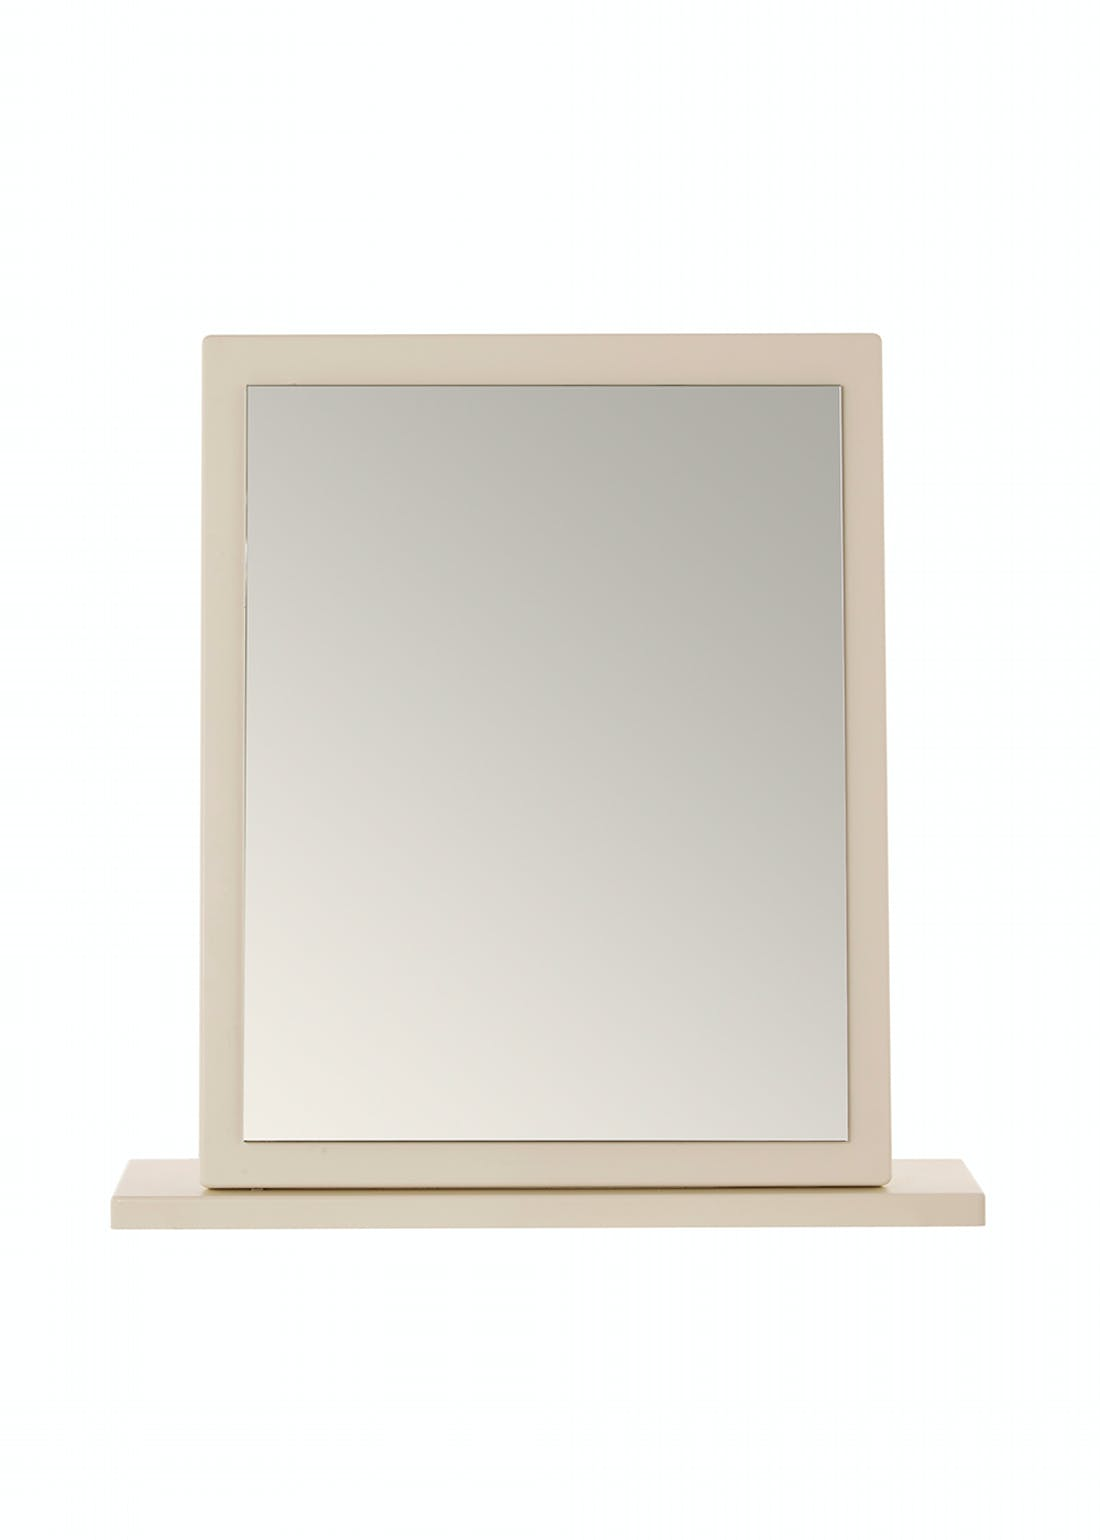 Swift Rimini Mirror (50.5cm x 48cm x 14cm)